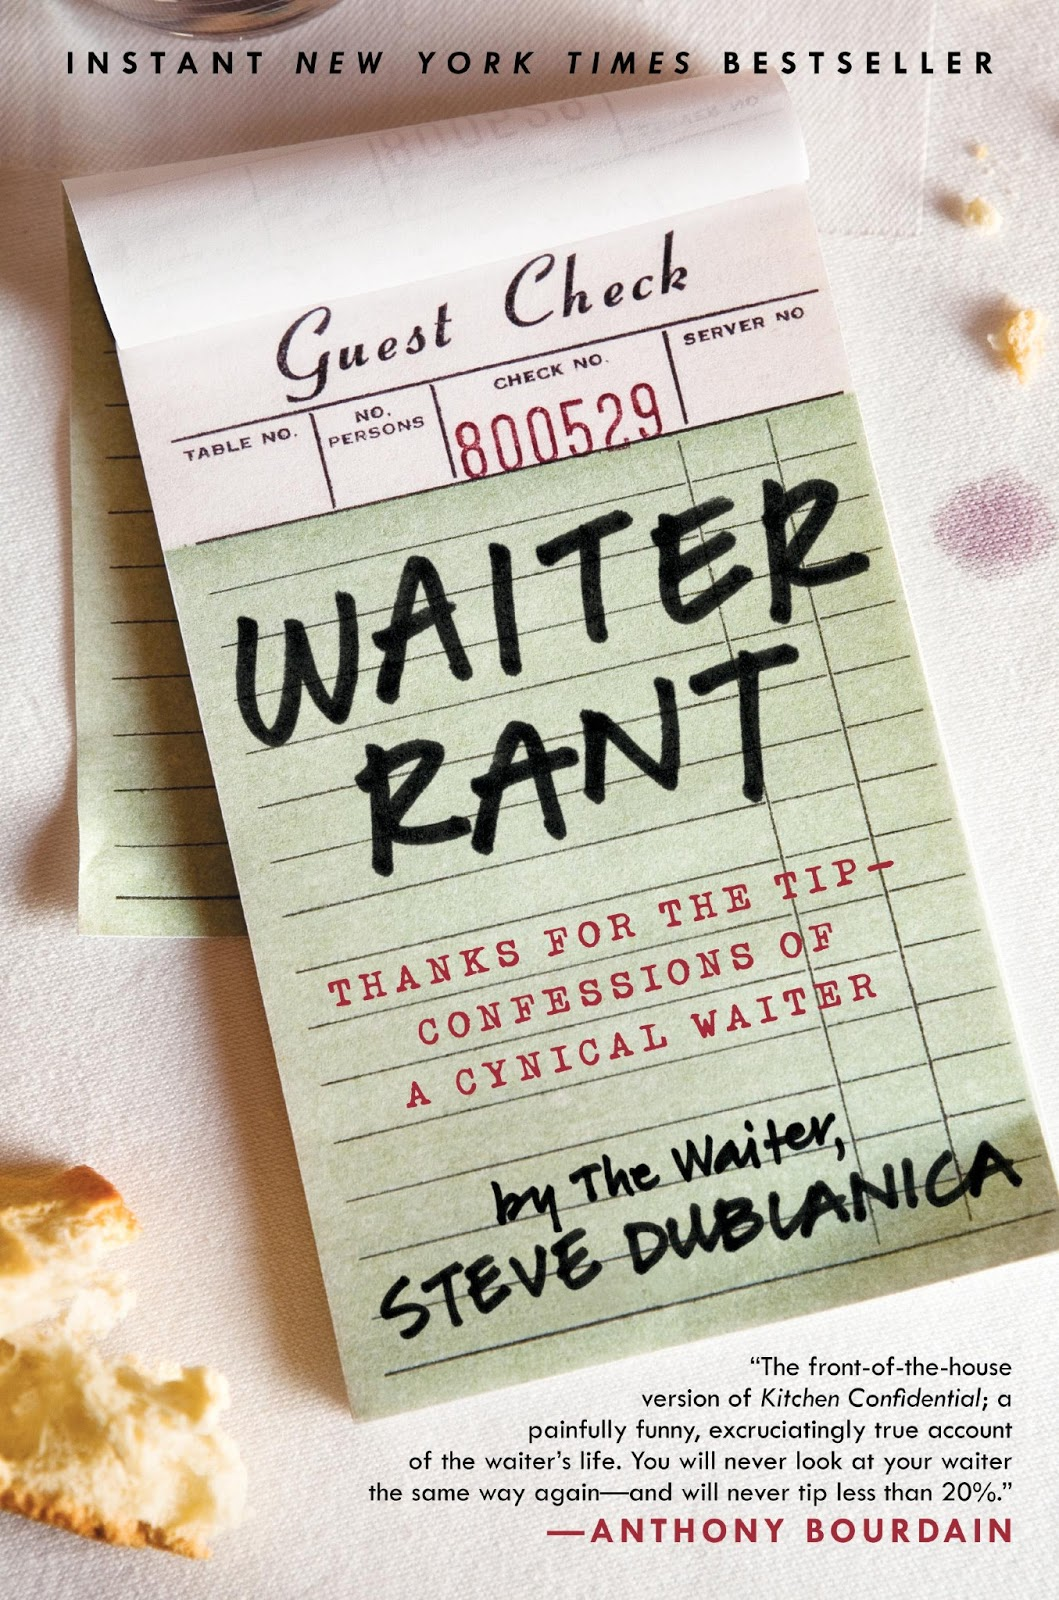 Waiter rant book